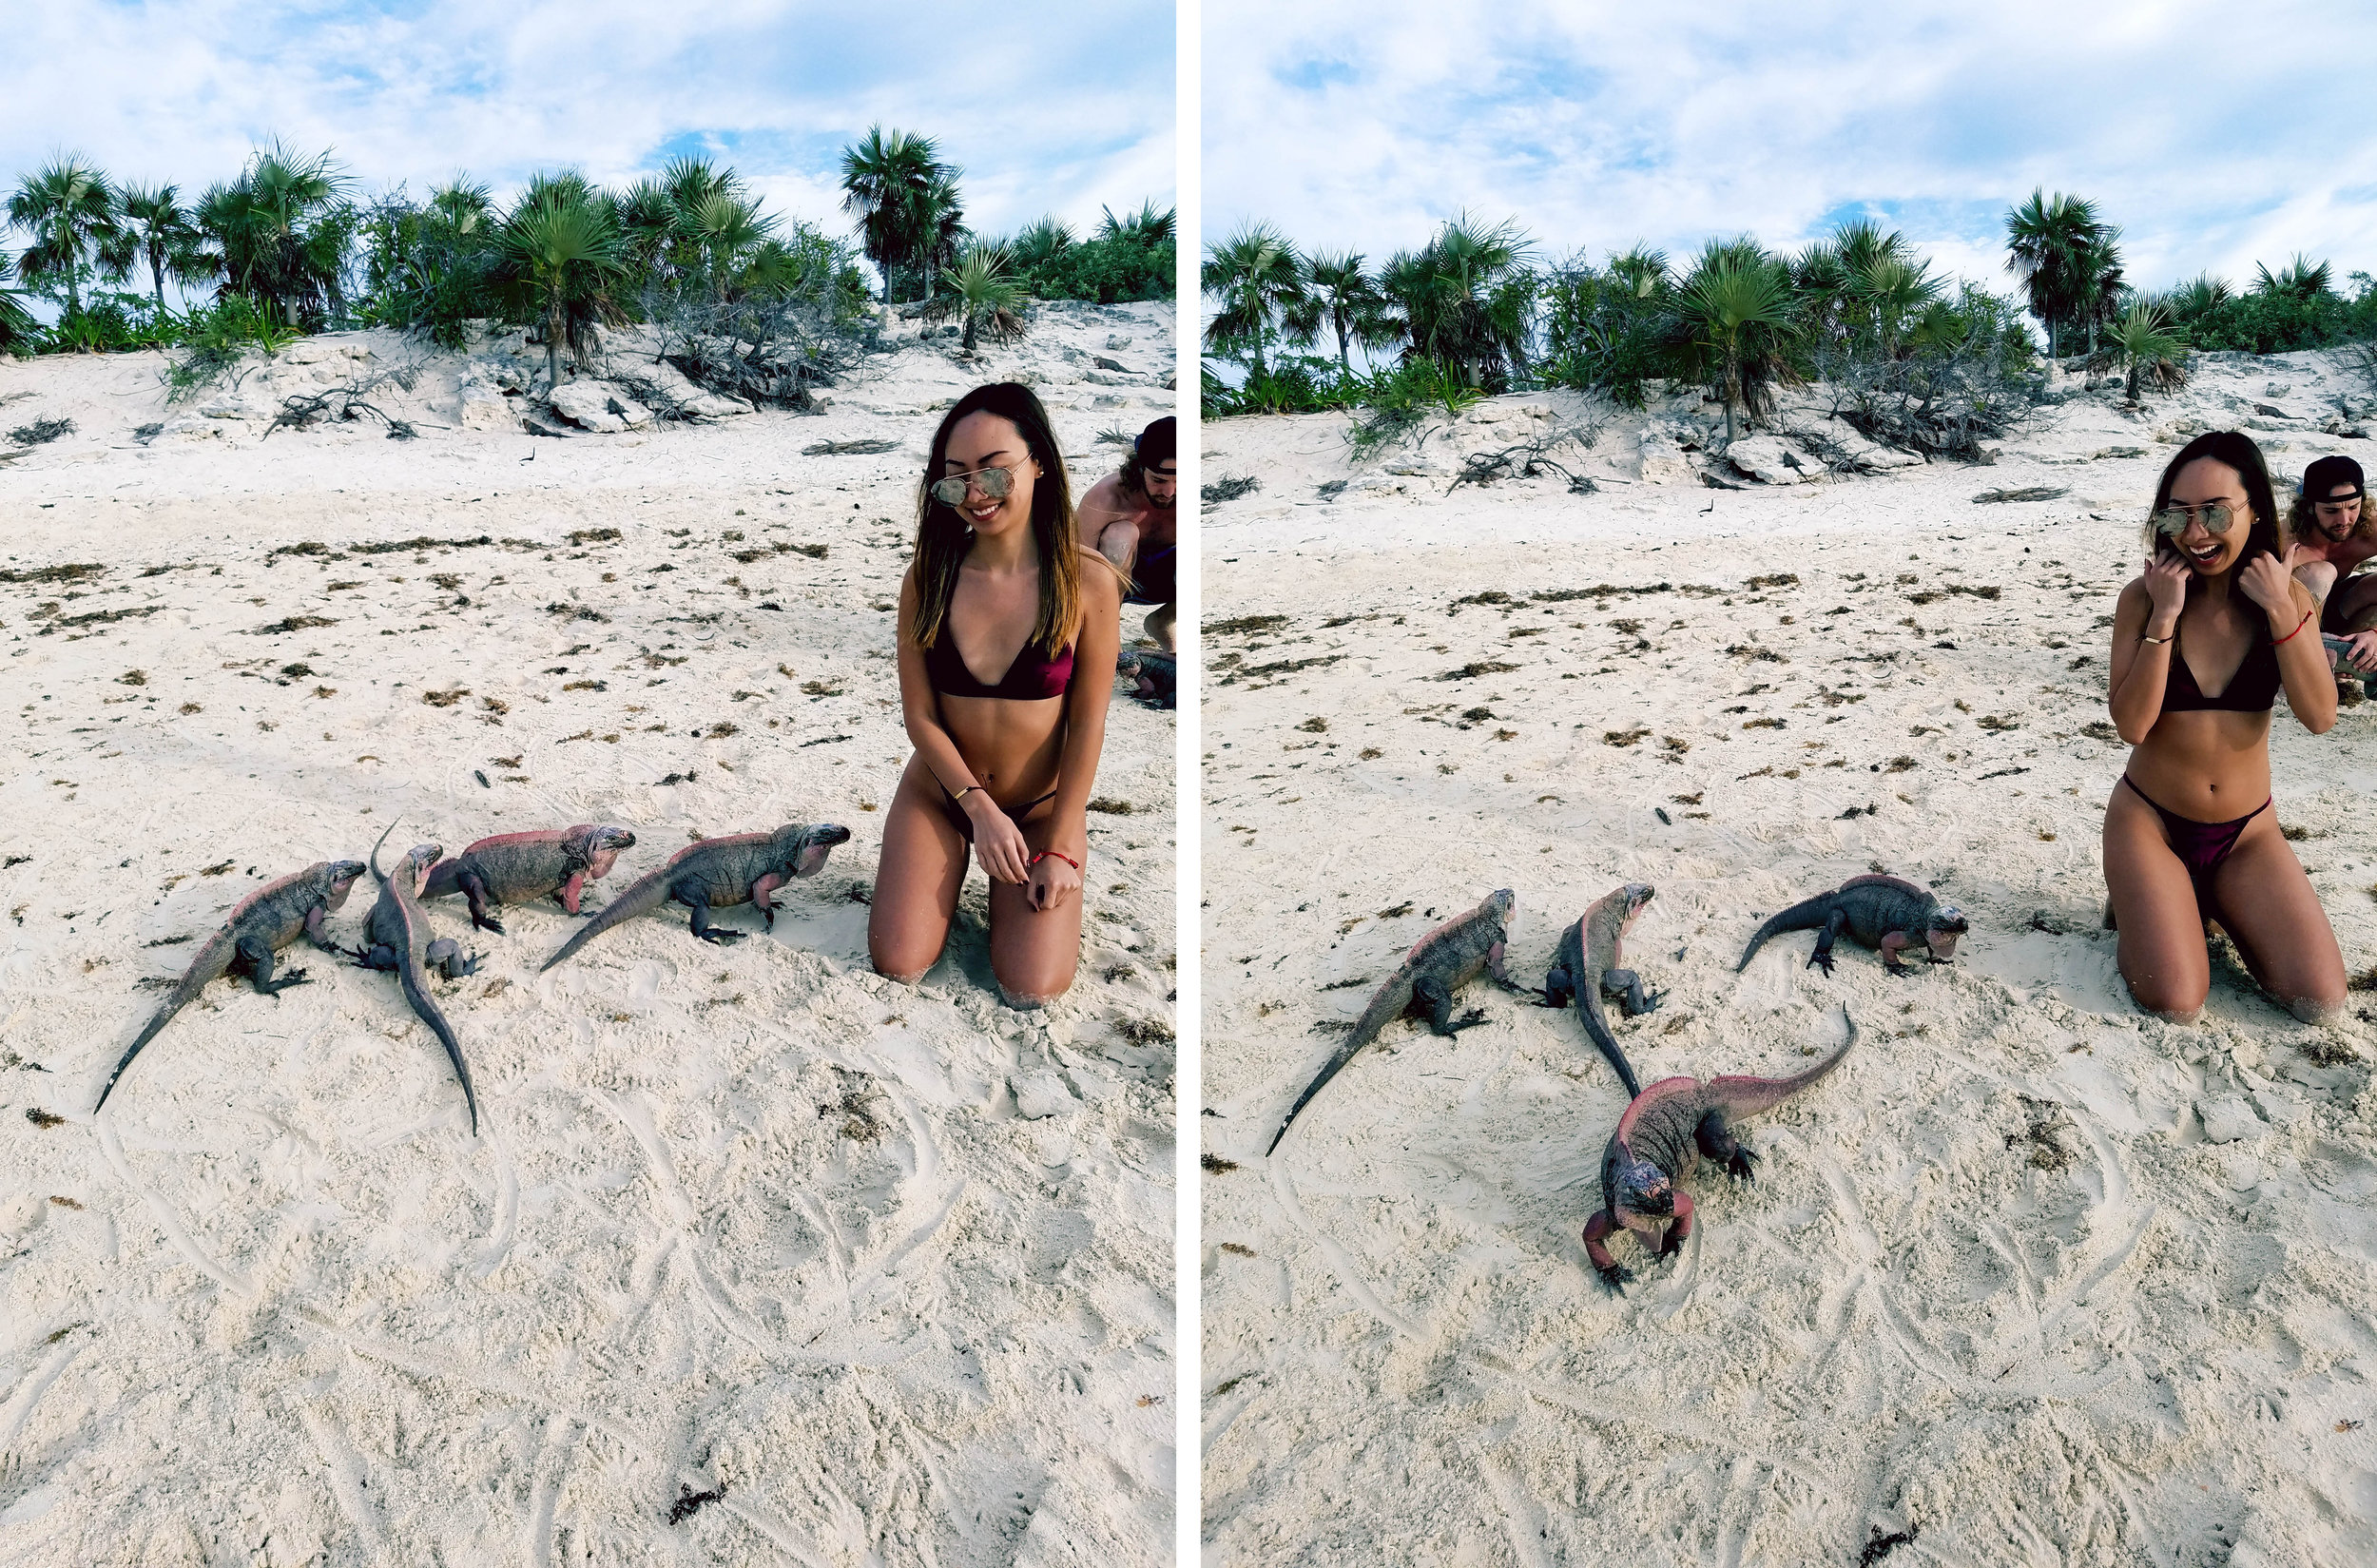 Our last stop was this iguana island! Again, I was pretty terrified because they have claws and can climb up on you. However, they were actually really cute and chill. You can feed them grapes by rolling them on the sand...they all run like crazy and fight for them. Each time I kneeled down, they would get SUPER close to me, so in all my shots you can see the fear in my face 😂.